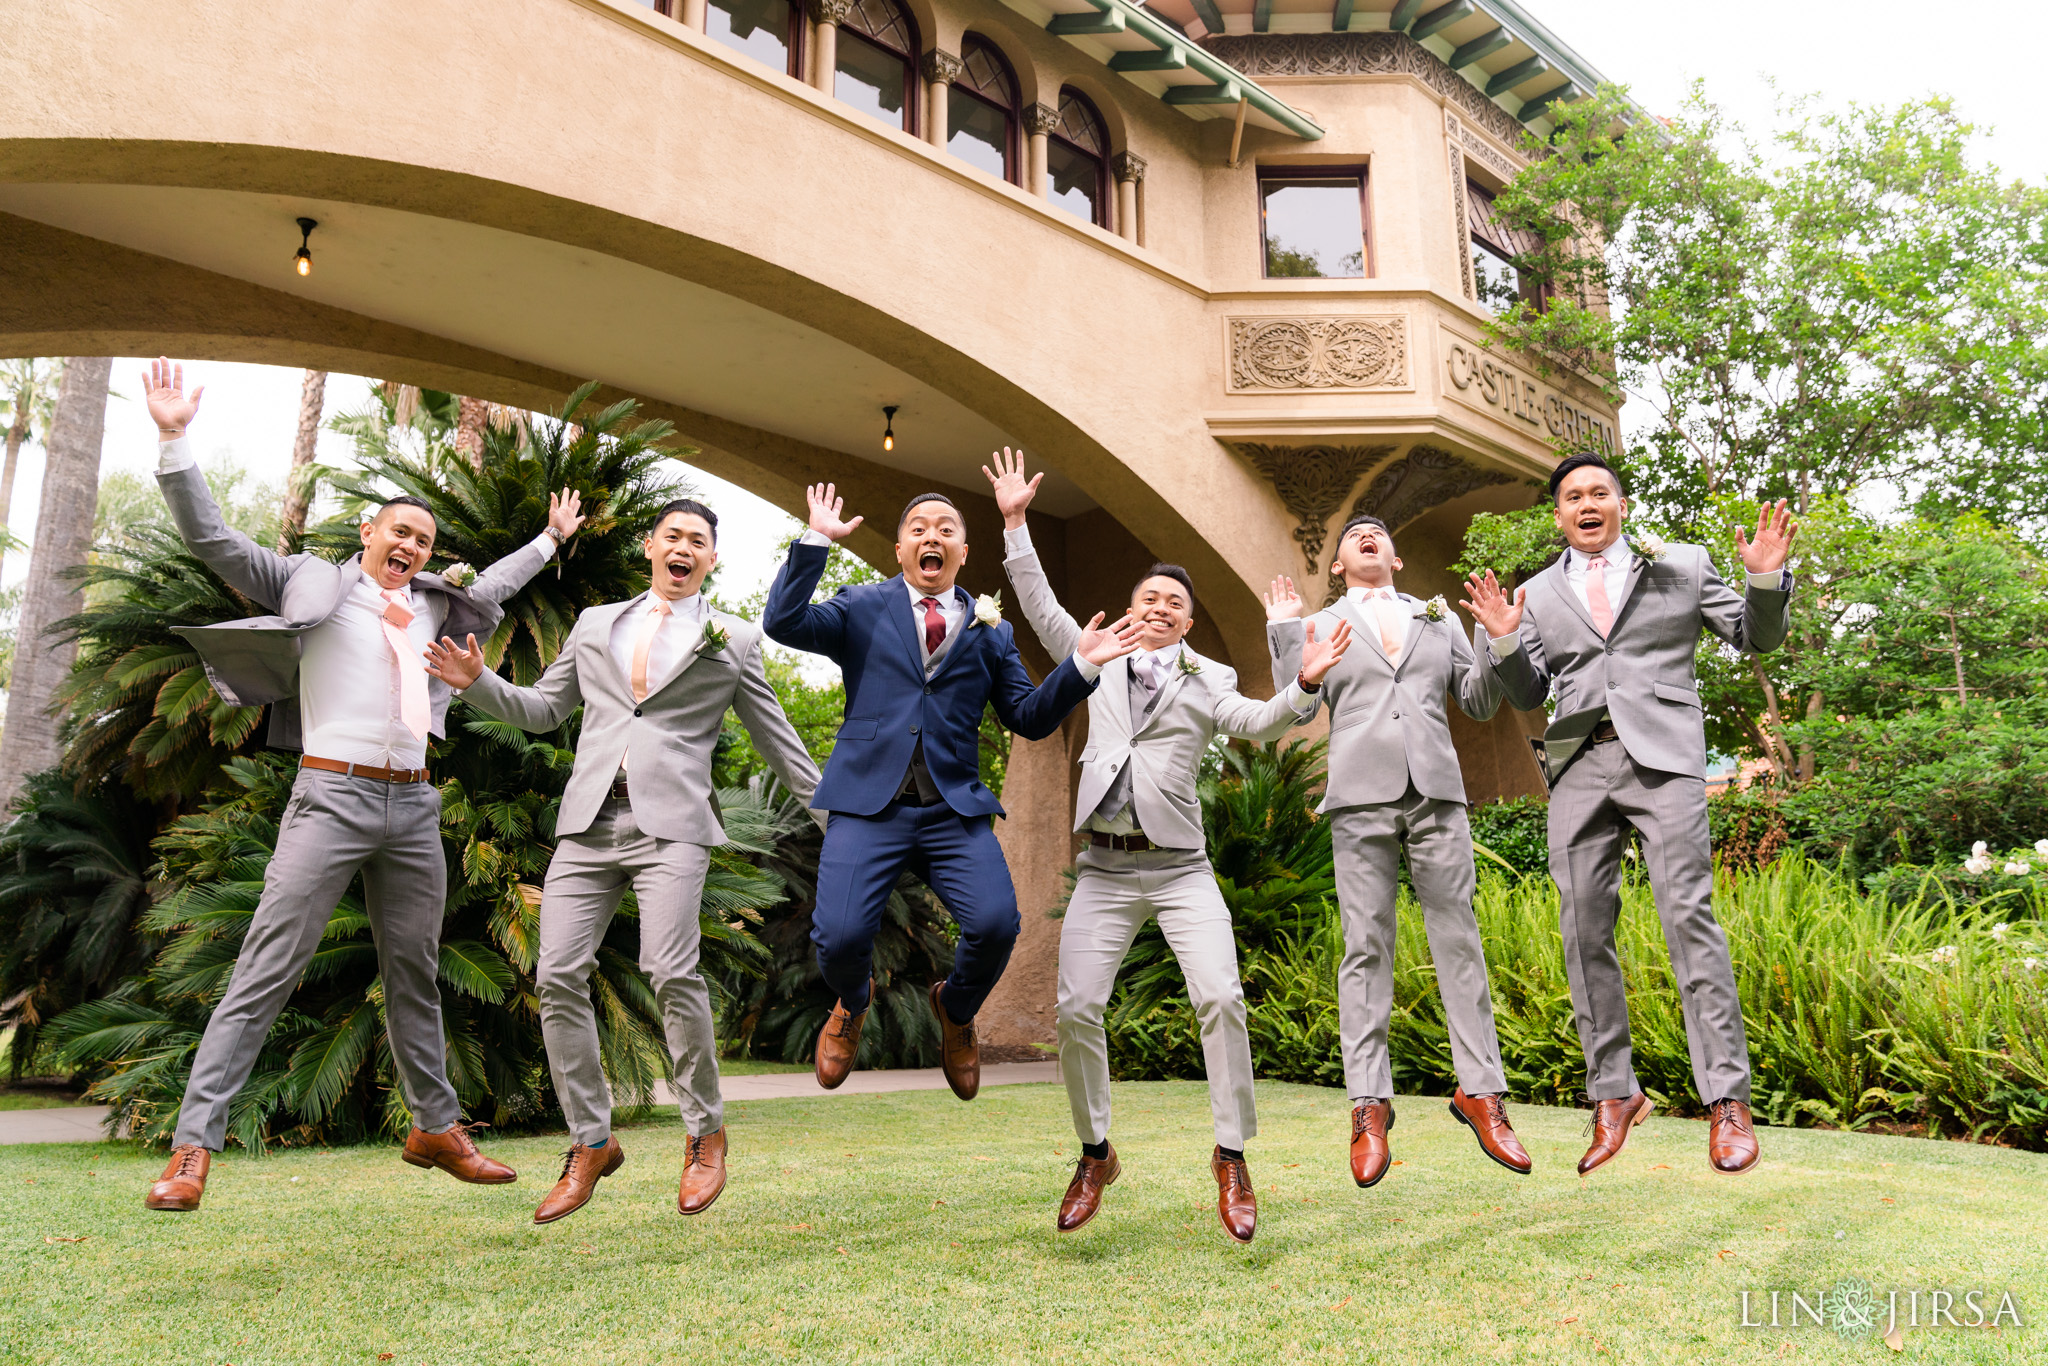 06 Castle Green Pasadena Los Angeles Wedding Photographer